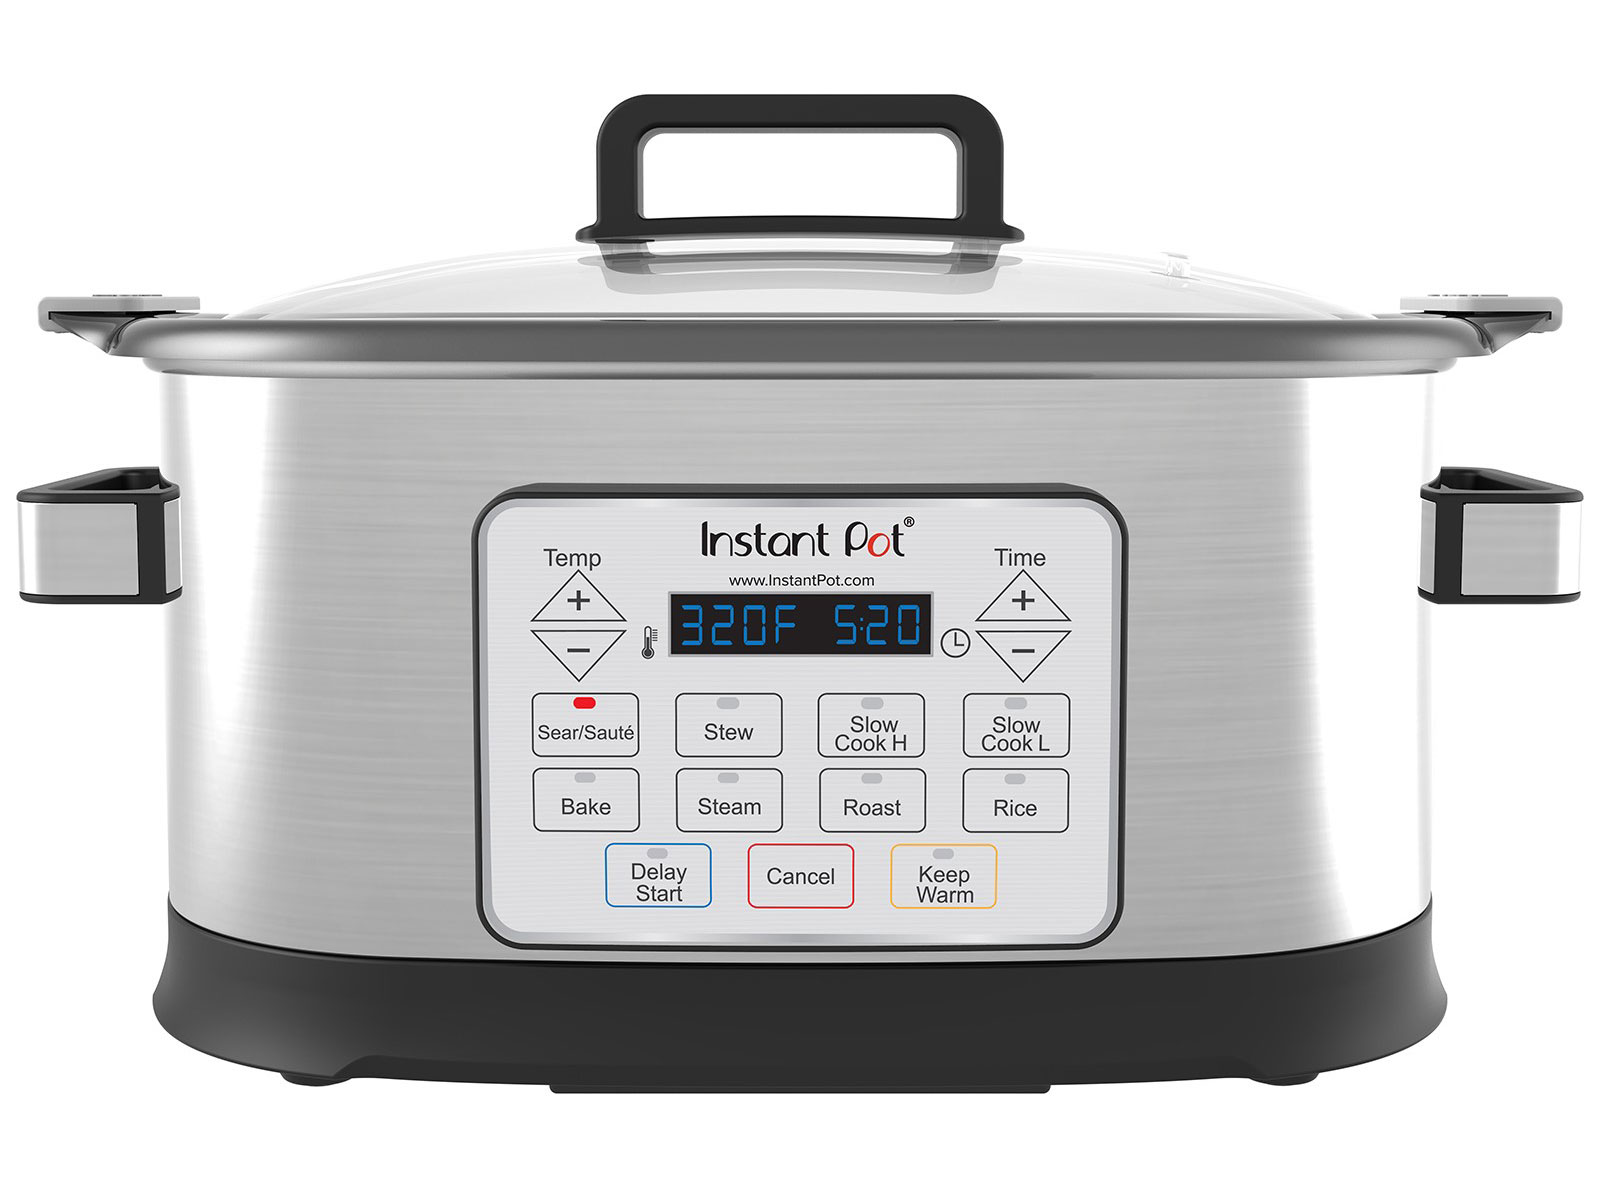 Instant Pot's Slow Cooker Is Under $60 at Walmart This Week